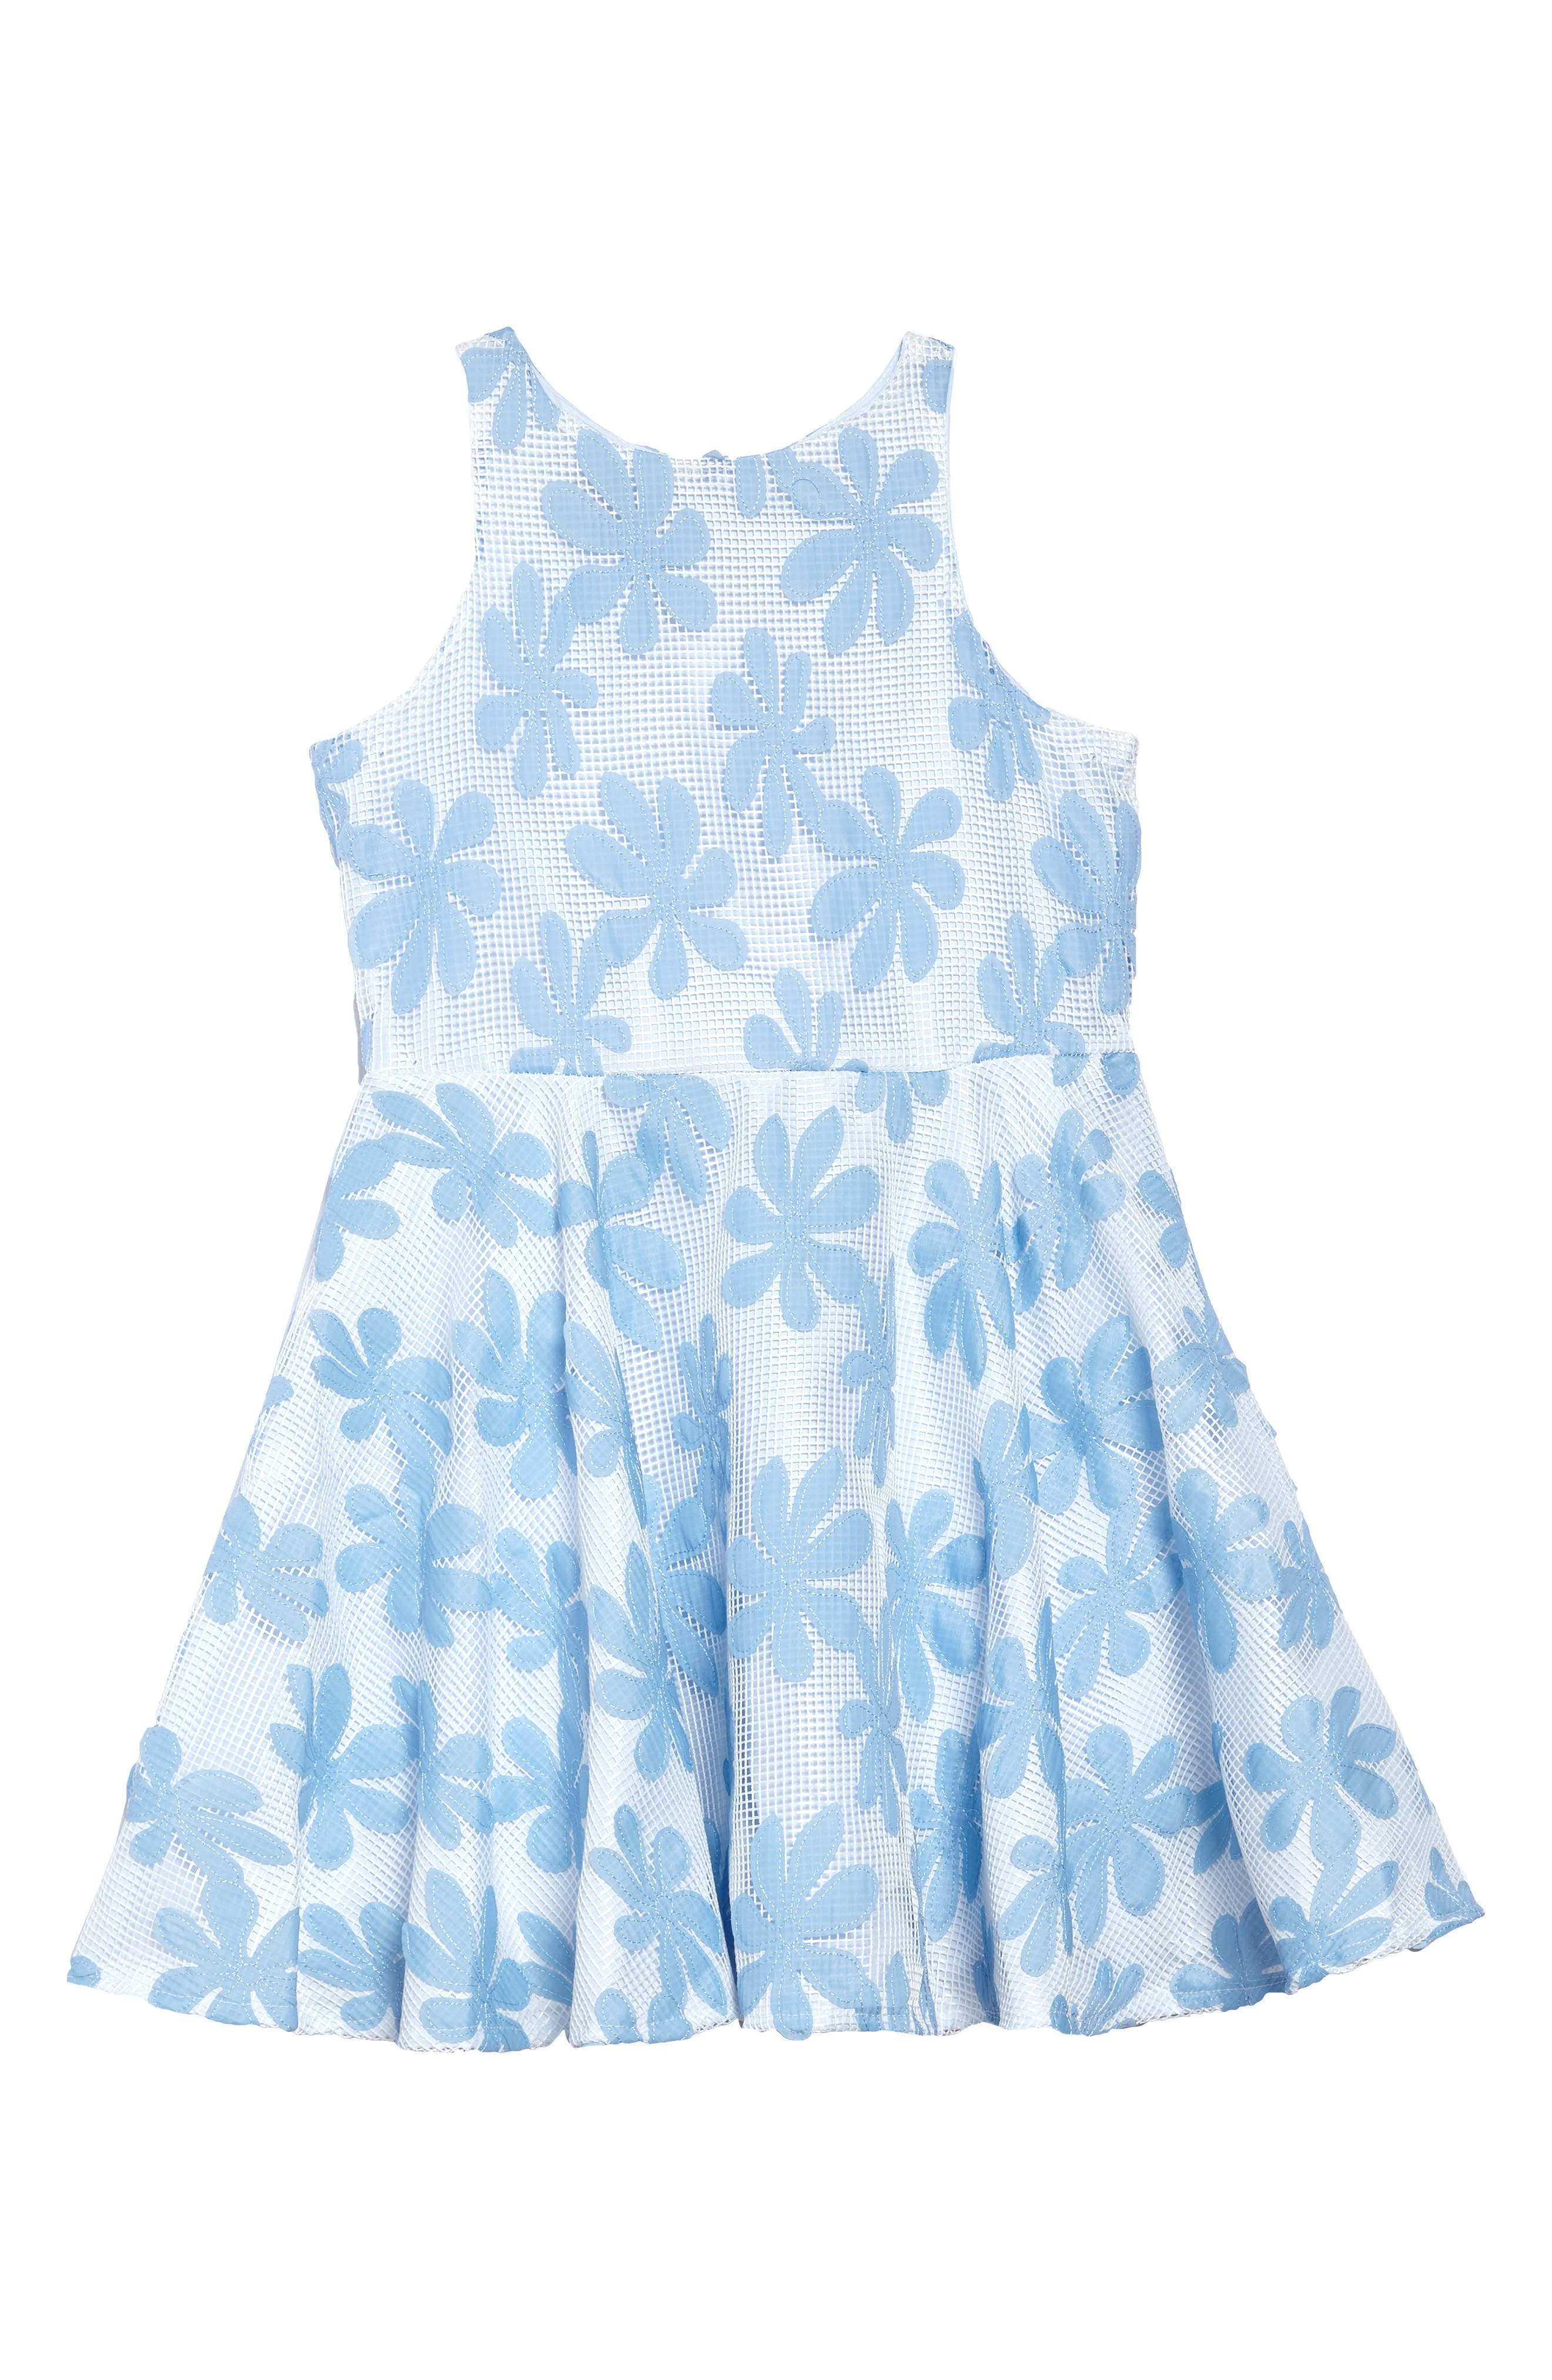 Pippa & Julie Daisy Appliqué Mesh Dress (Baby Girls & Big Girls)